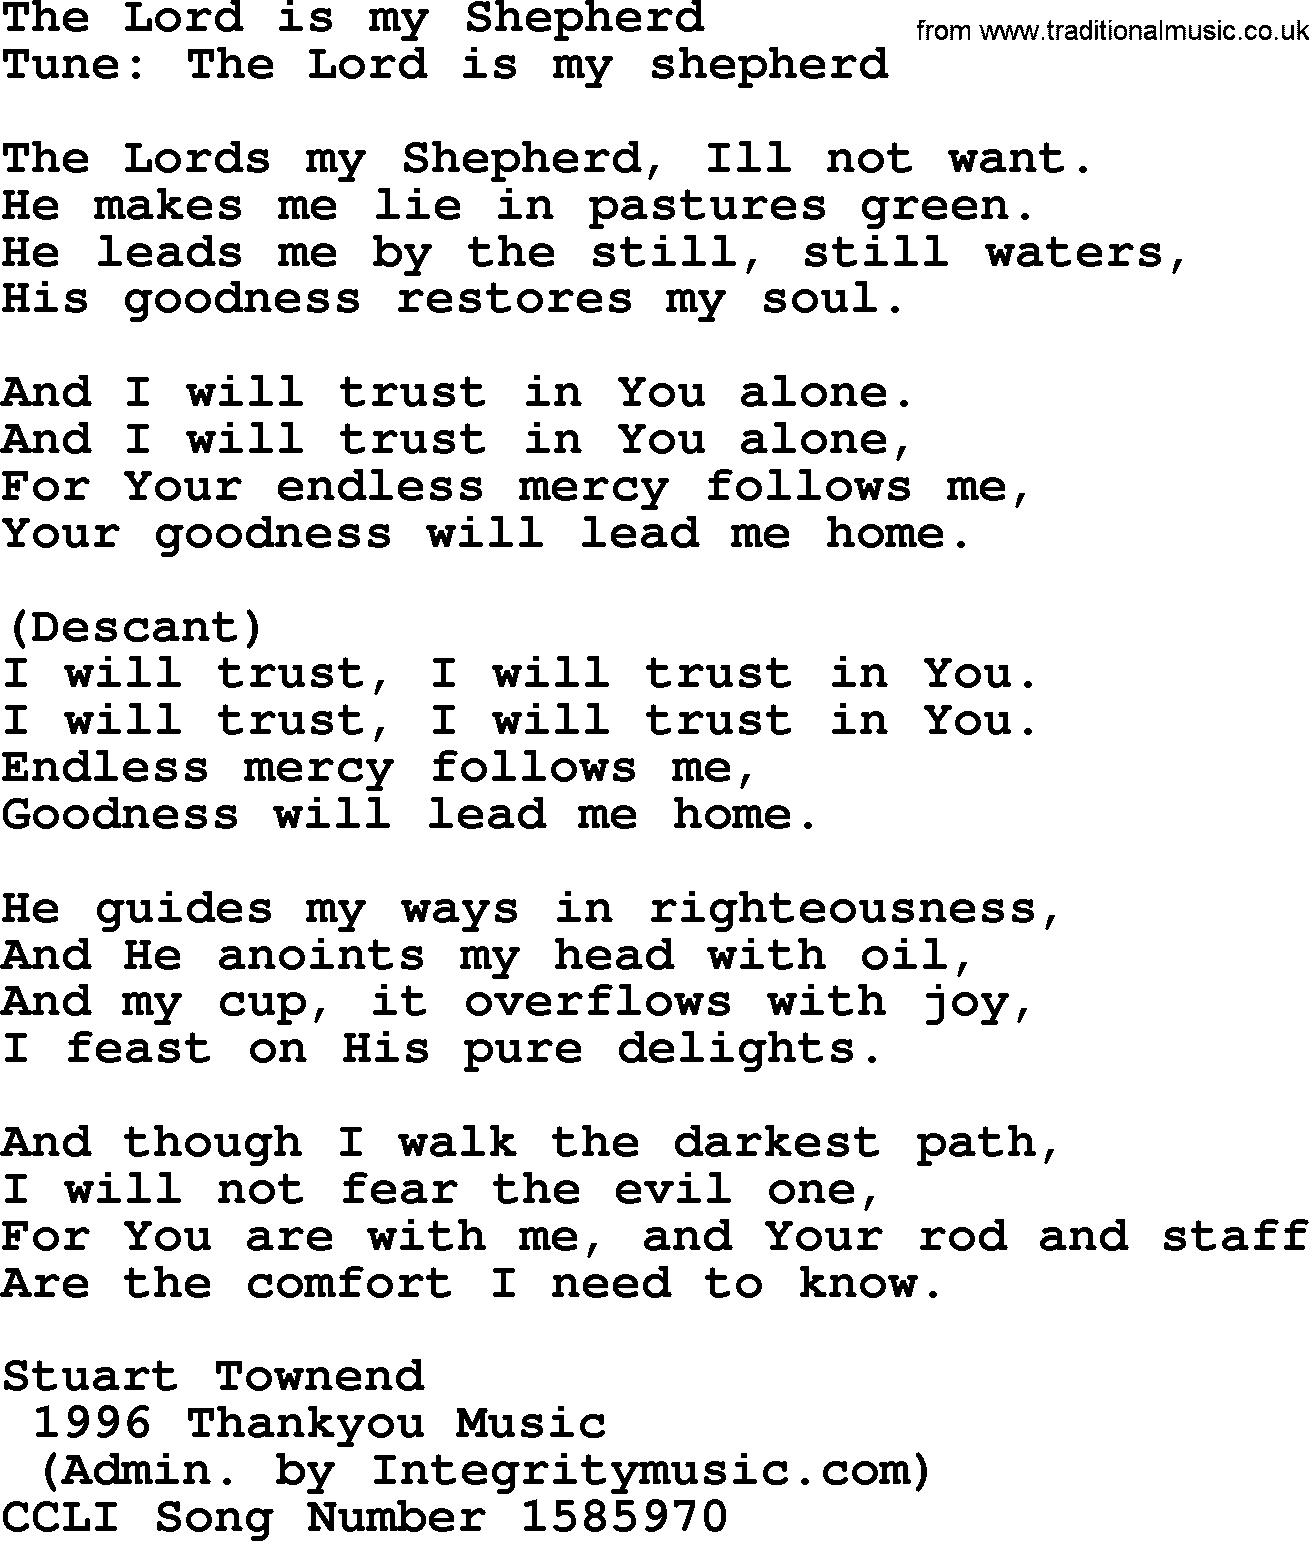 Wedding Hymns And Songs The Lord Is My Shepherd Txt Lyrics Chords And Pdf